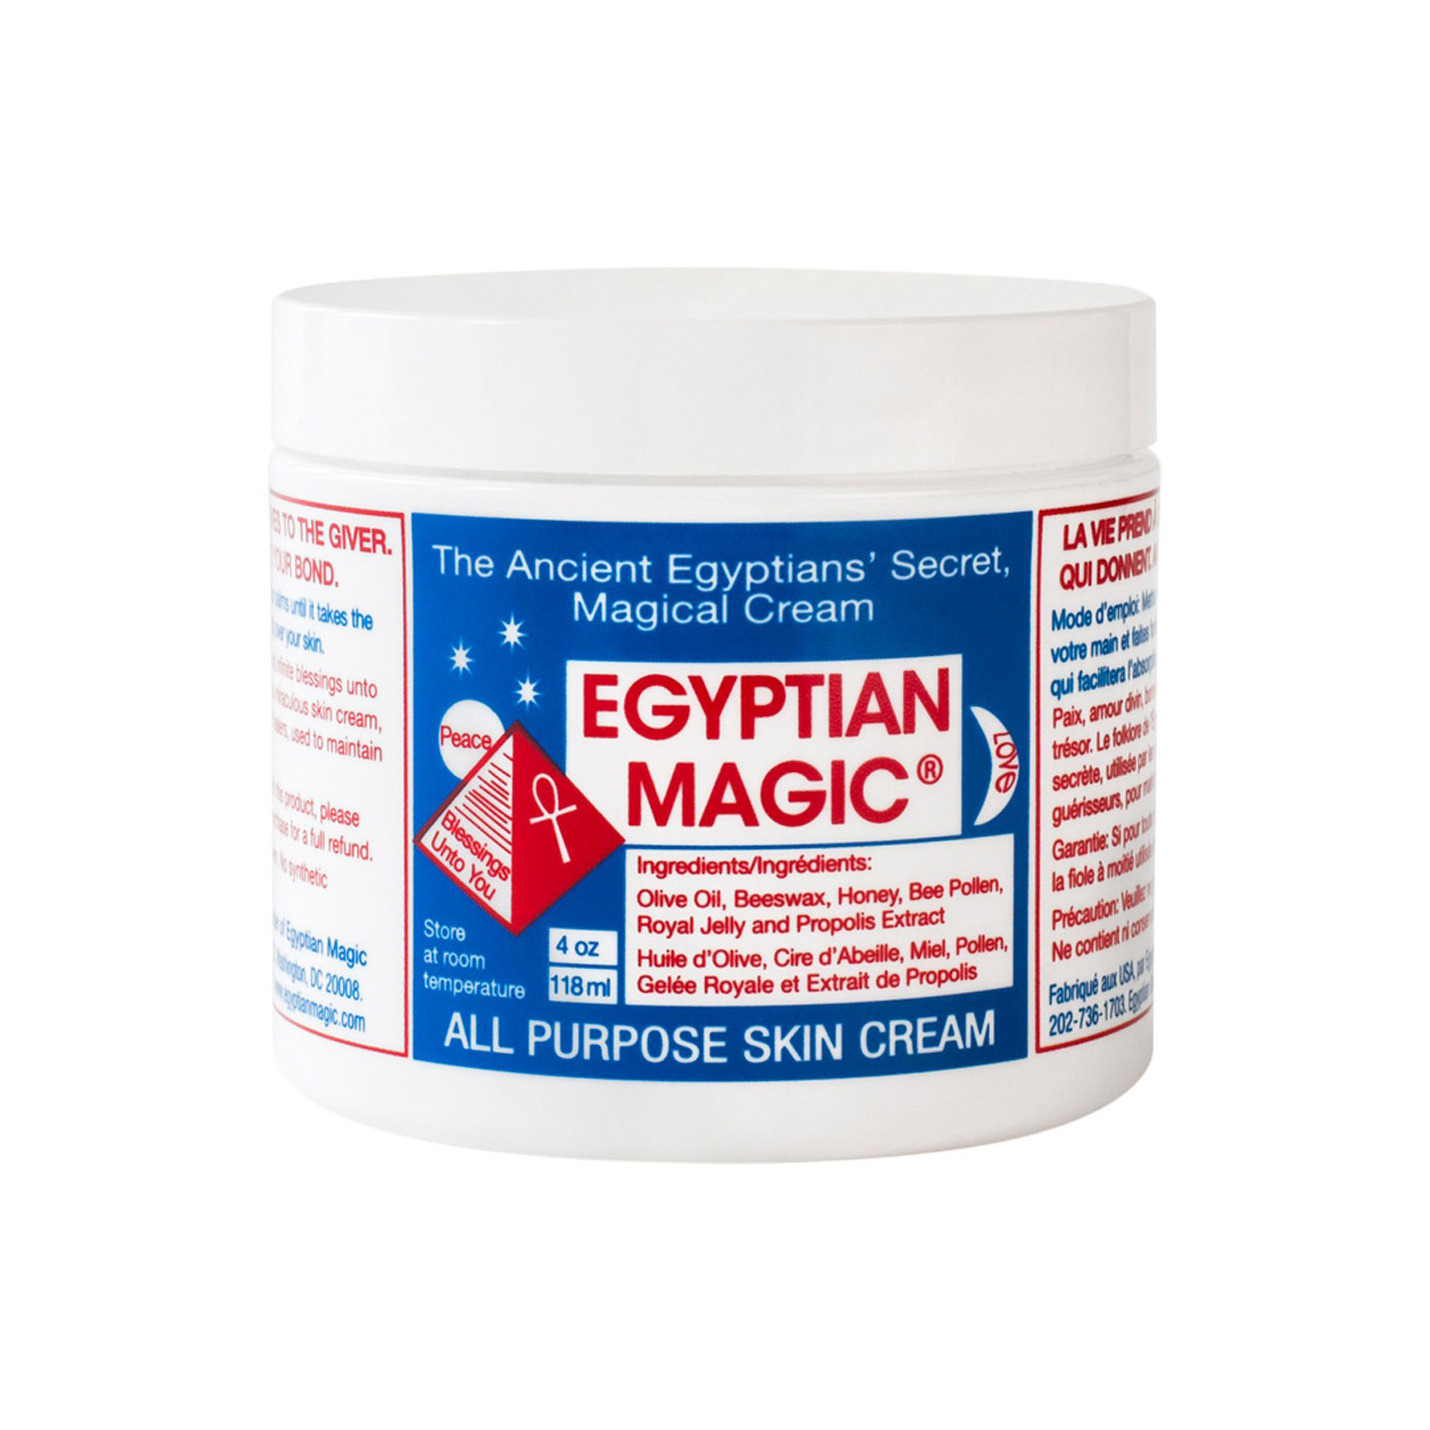 Kem dưỡng Egyptian Magic